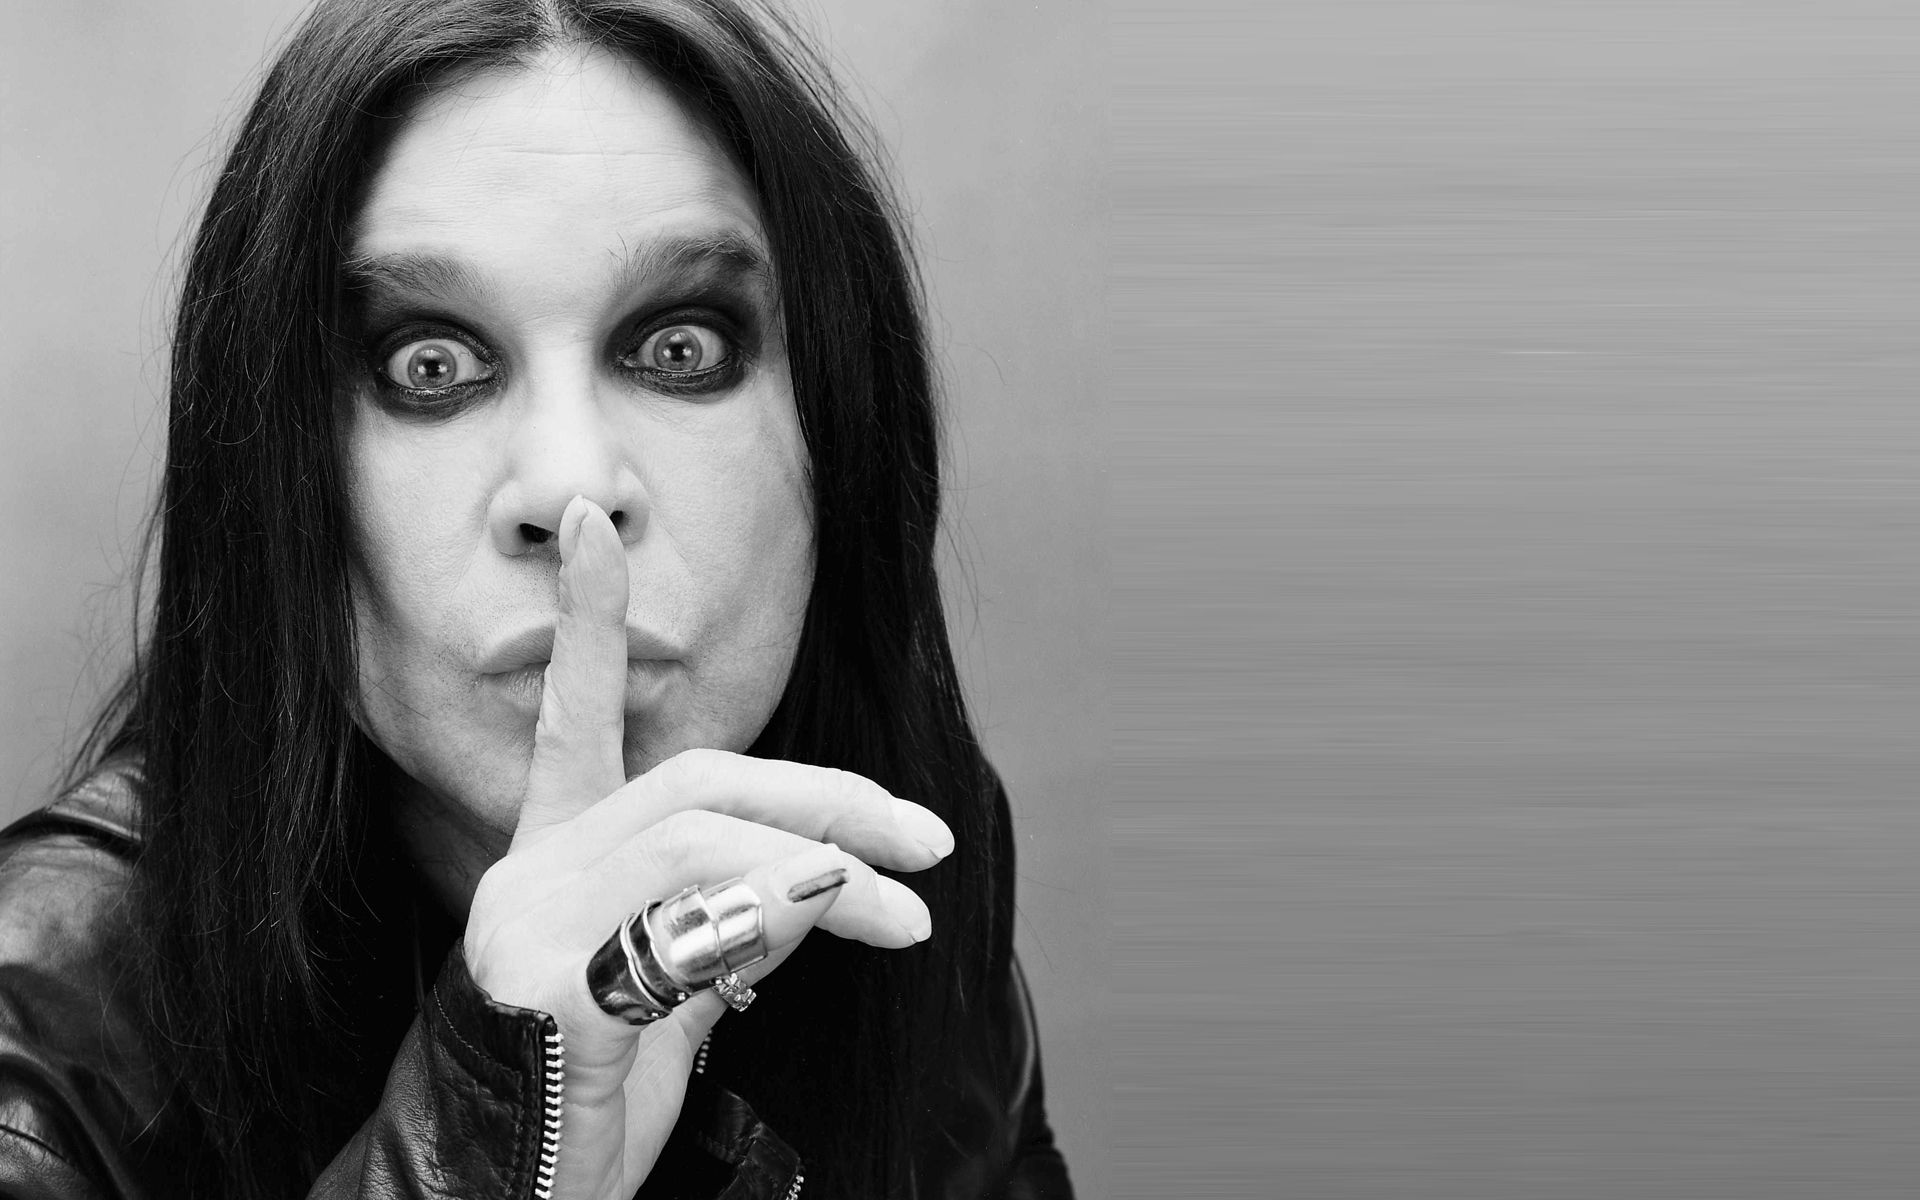 Ozzy Osbourne Rumoured to Have Cameo in 'Ghostbusters' Reboo